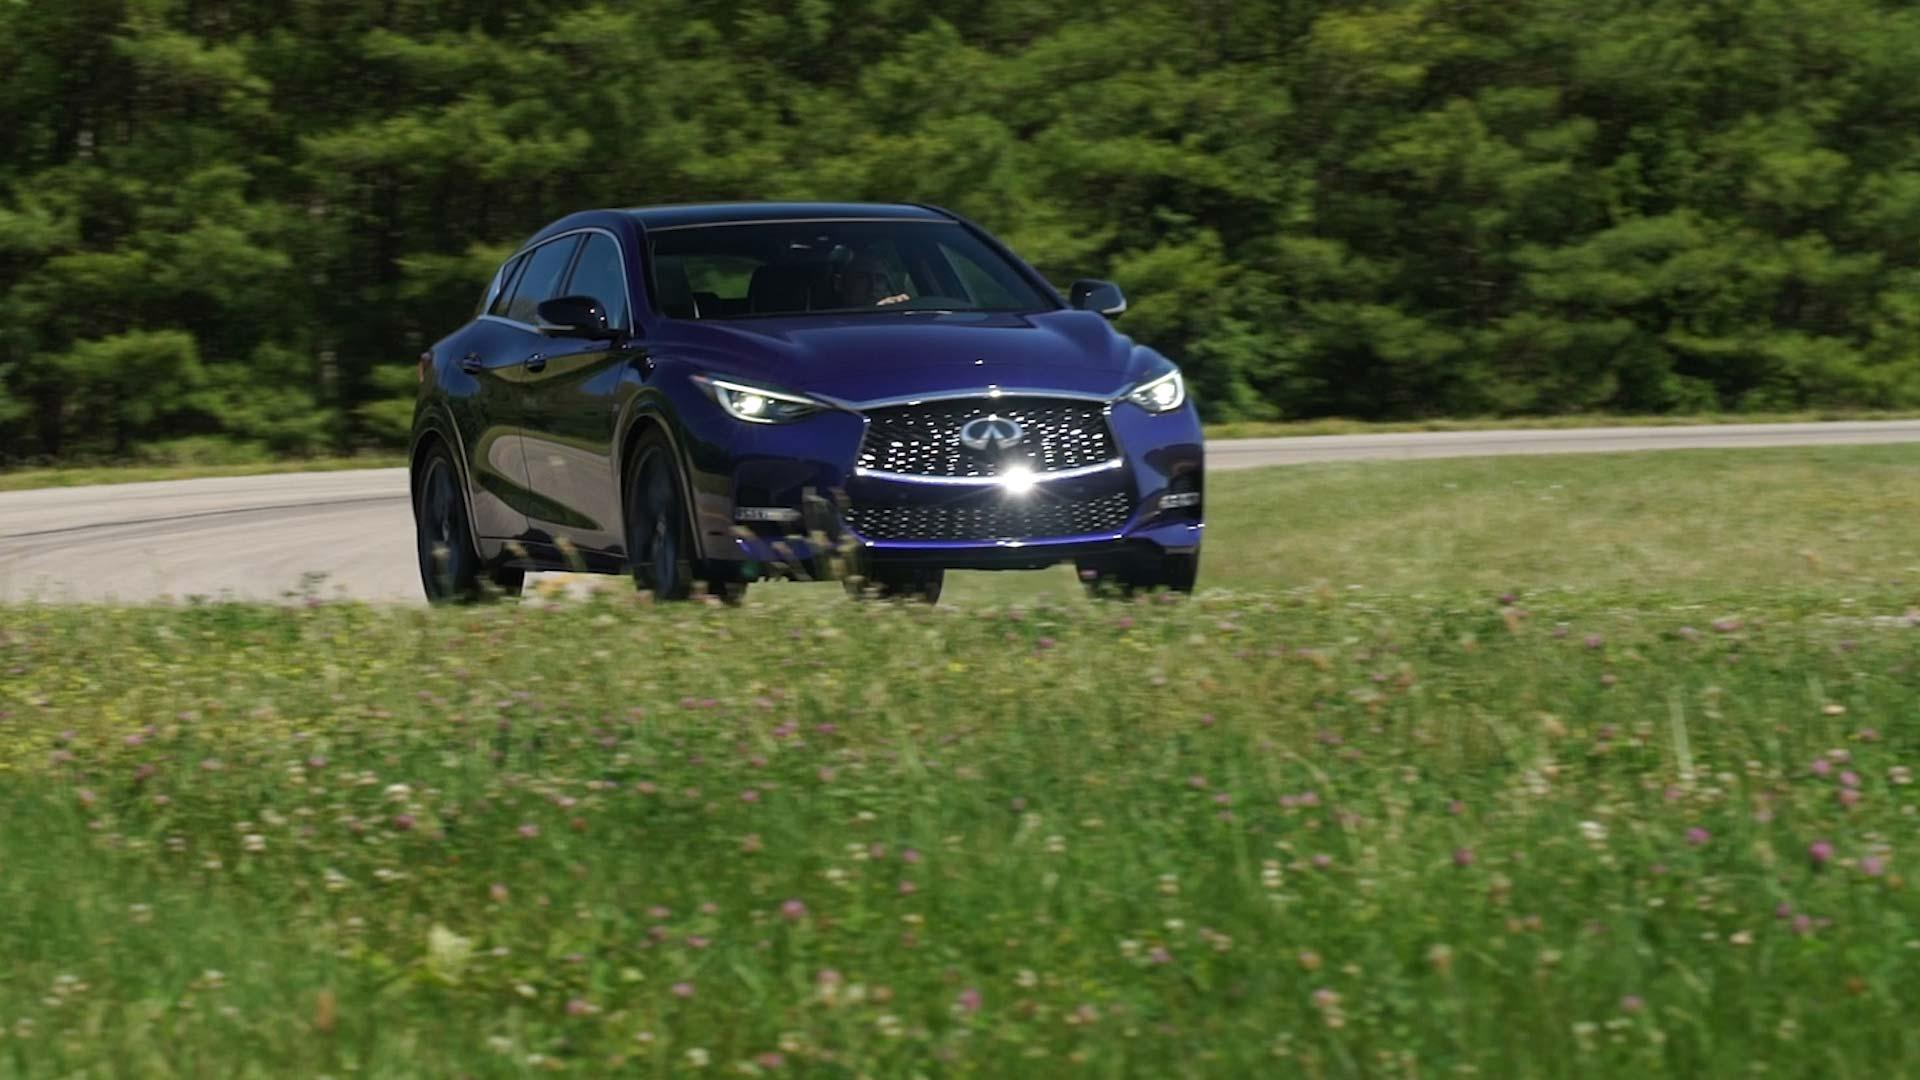 Consumer Reports Best Used Cars Unique 2017 Infiniti Qx30 Suv Has International Flair Consumer Reports